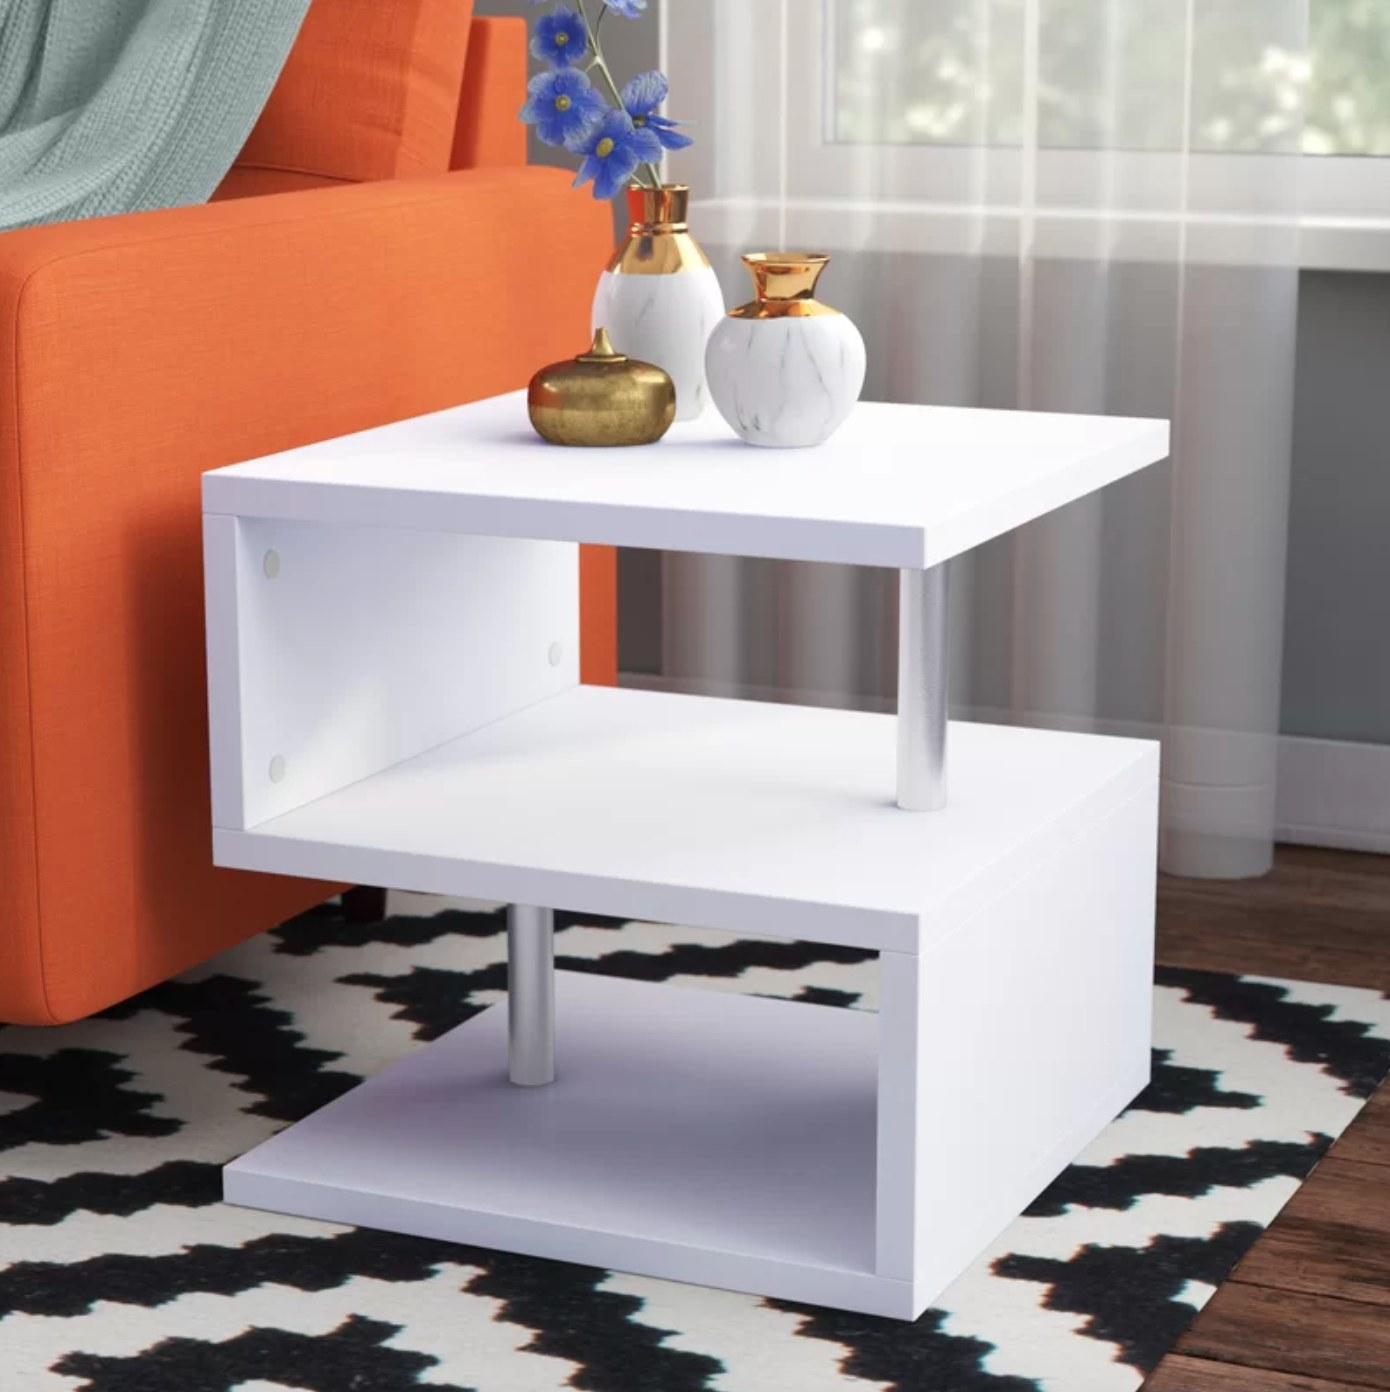 The end table with storage in white and chrome